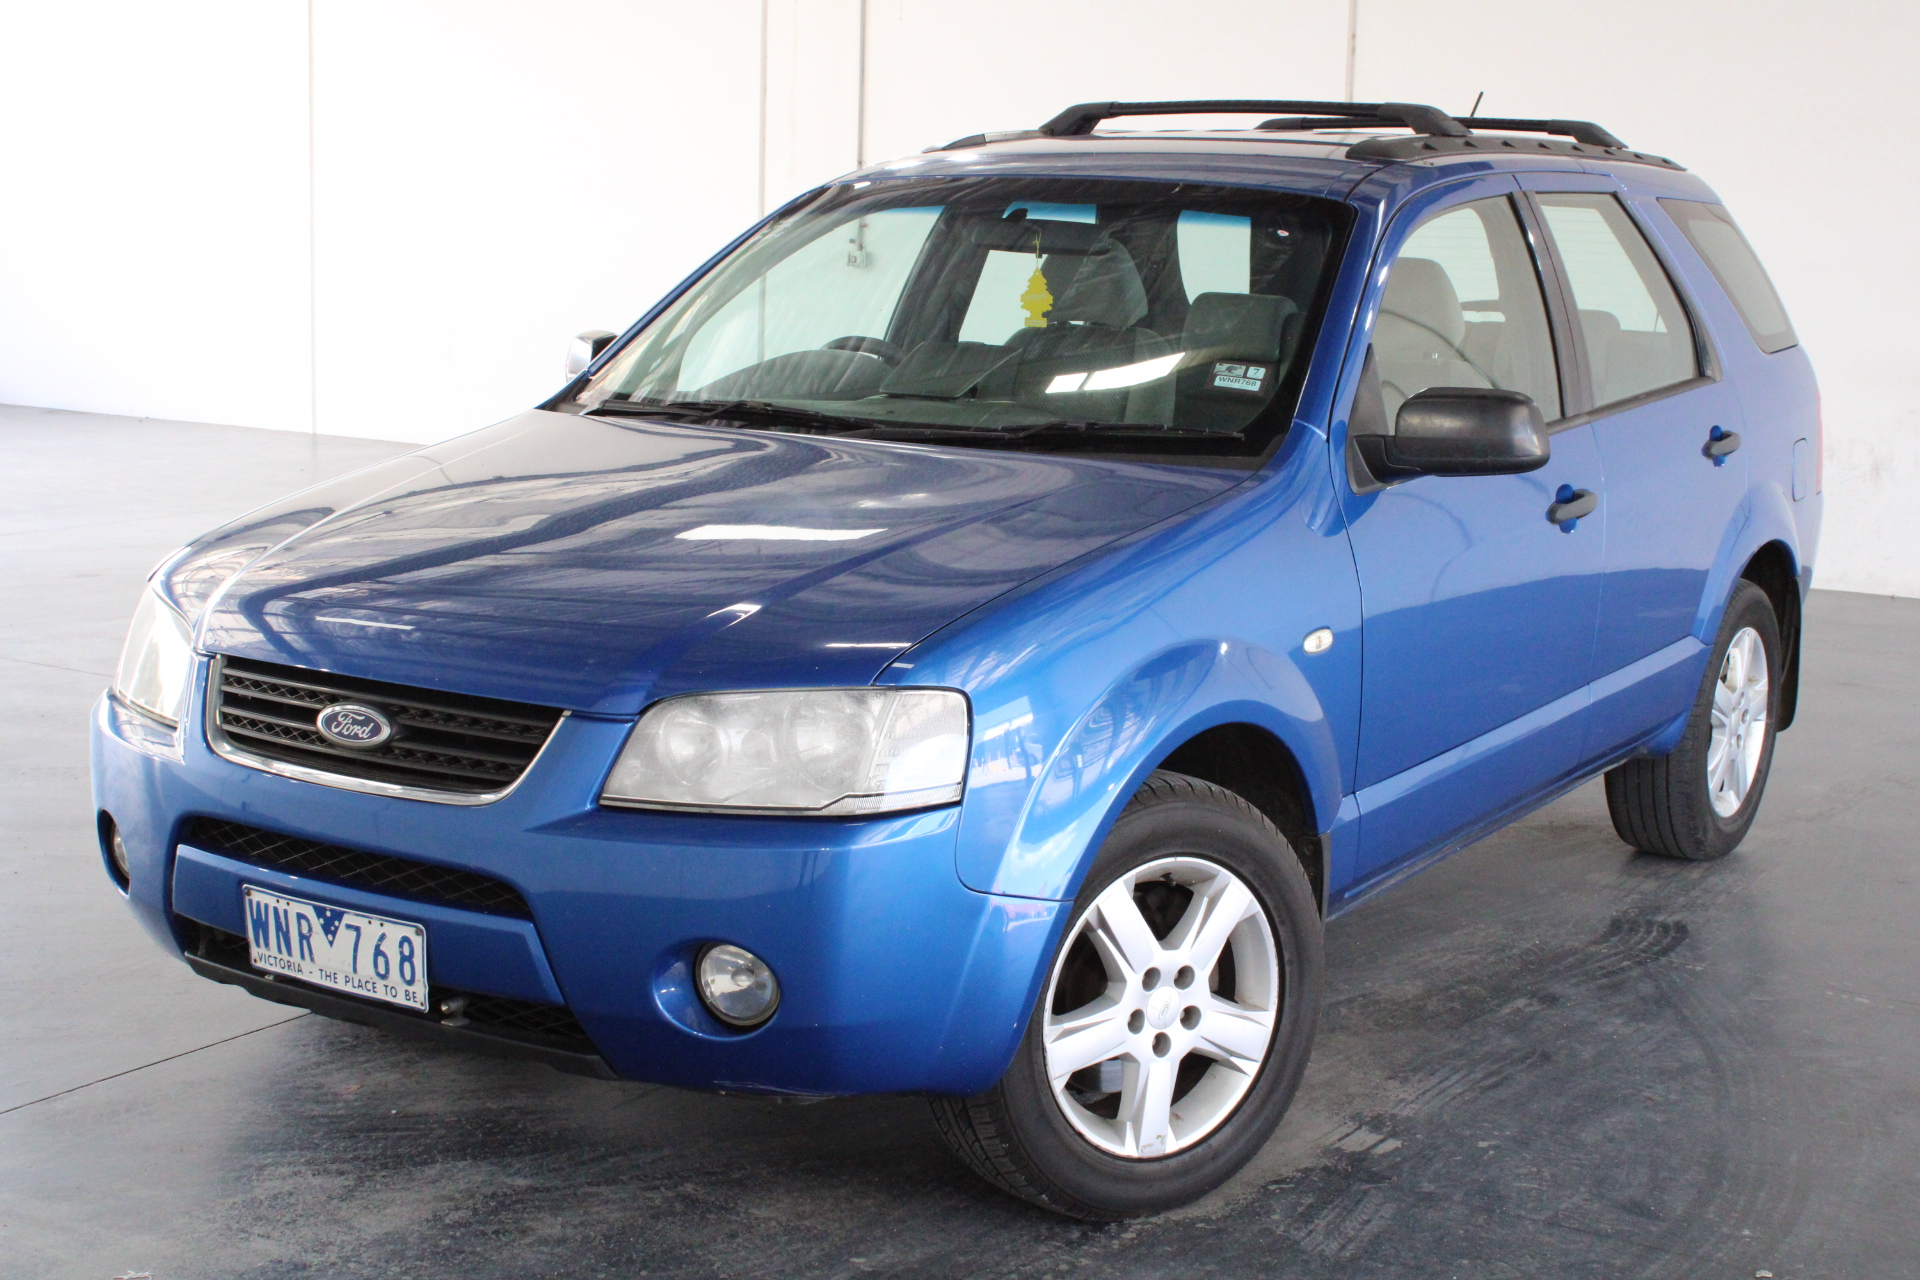 2007 Ford Territory TS (RWD) SY Automatic Wagon